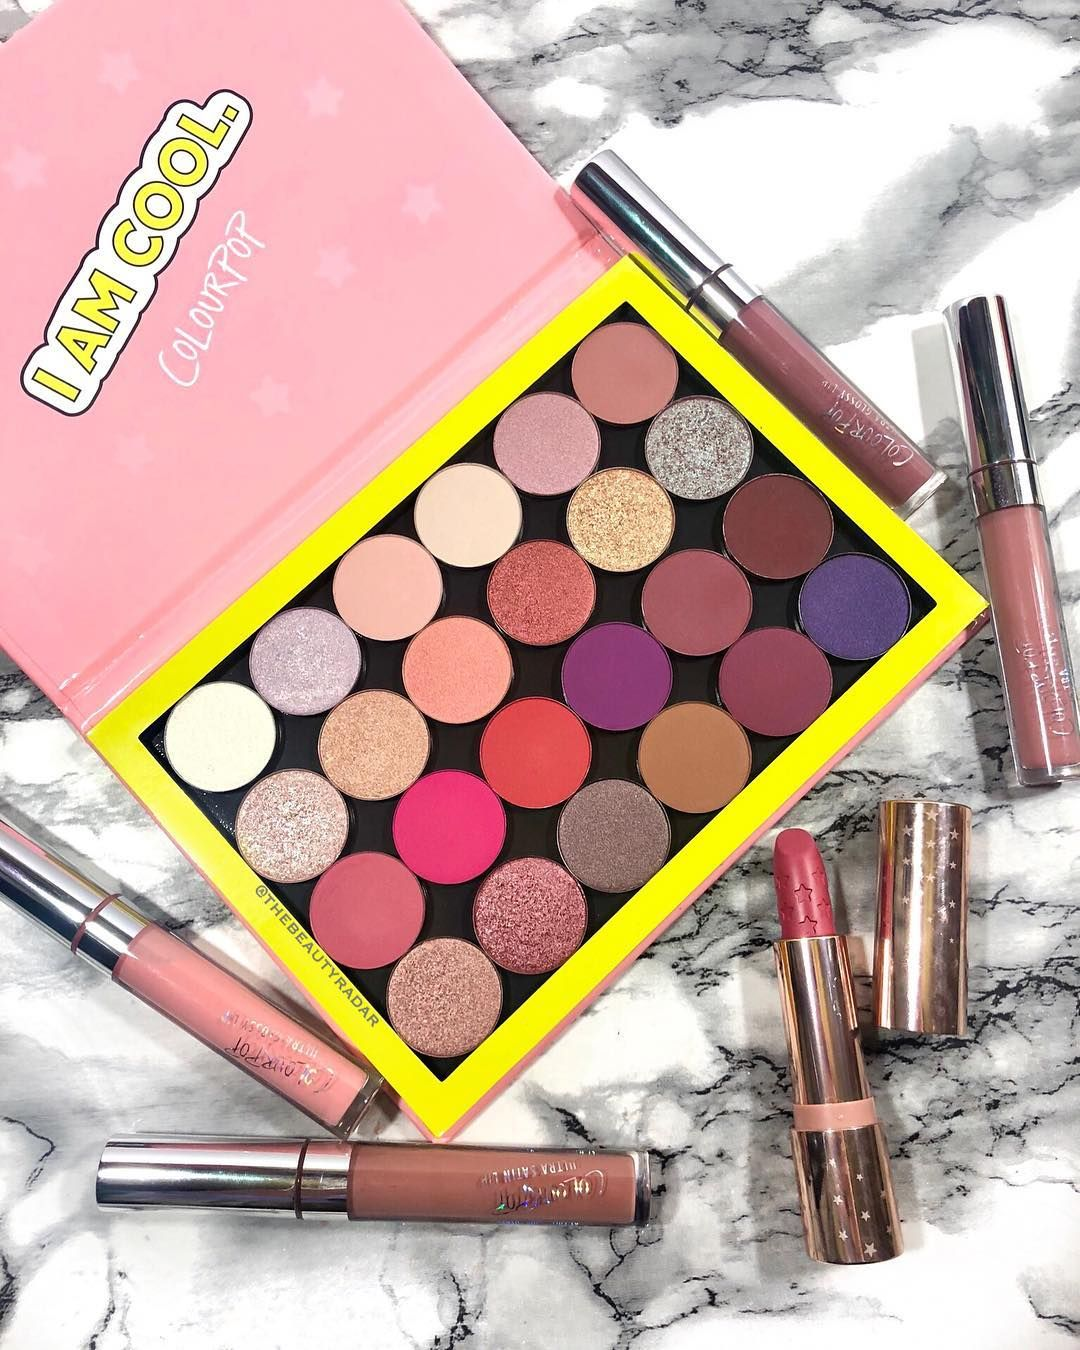 Build your own palette! So many possibilities that won't